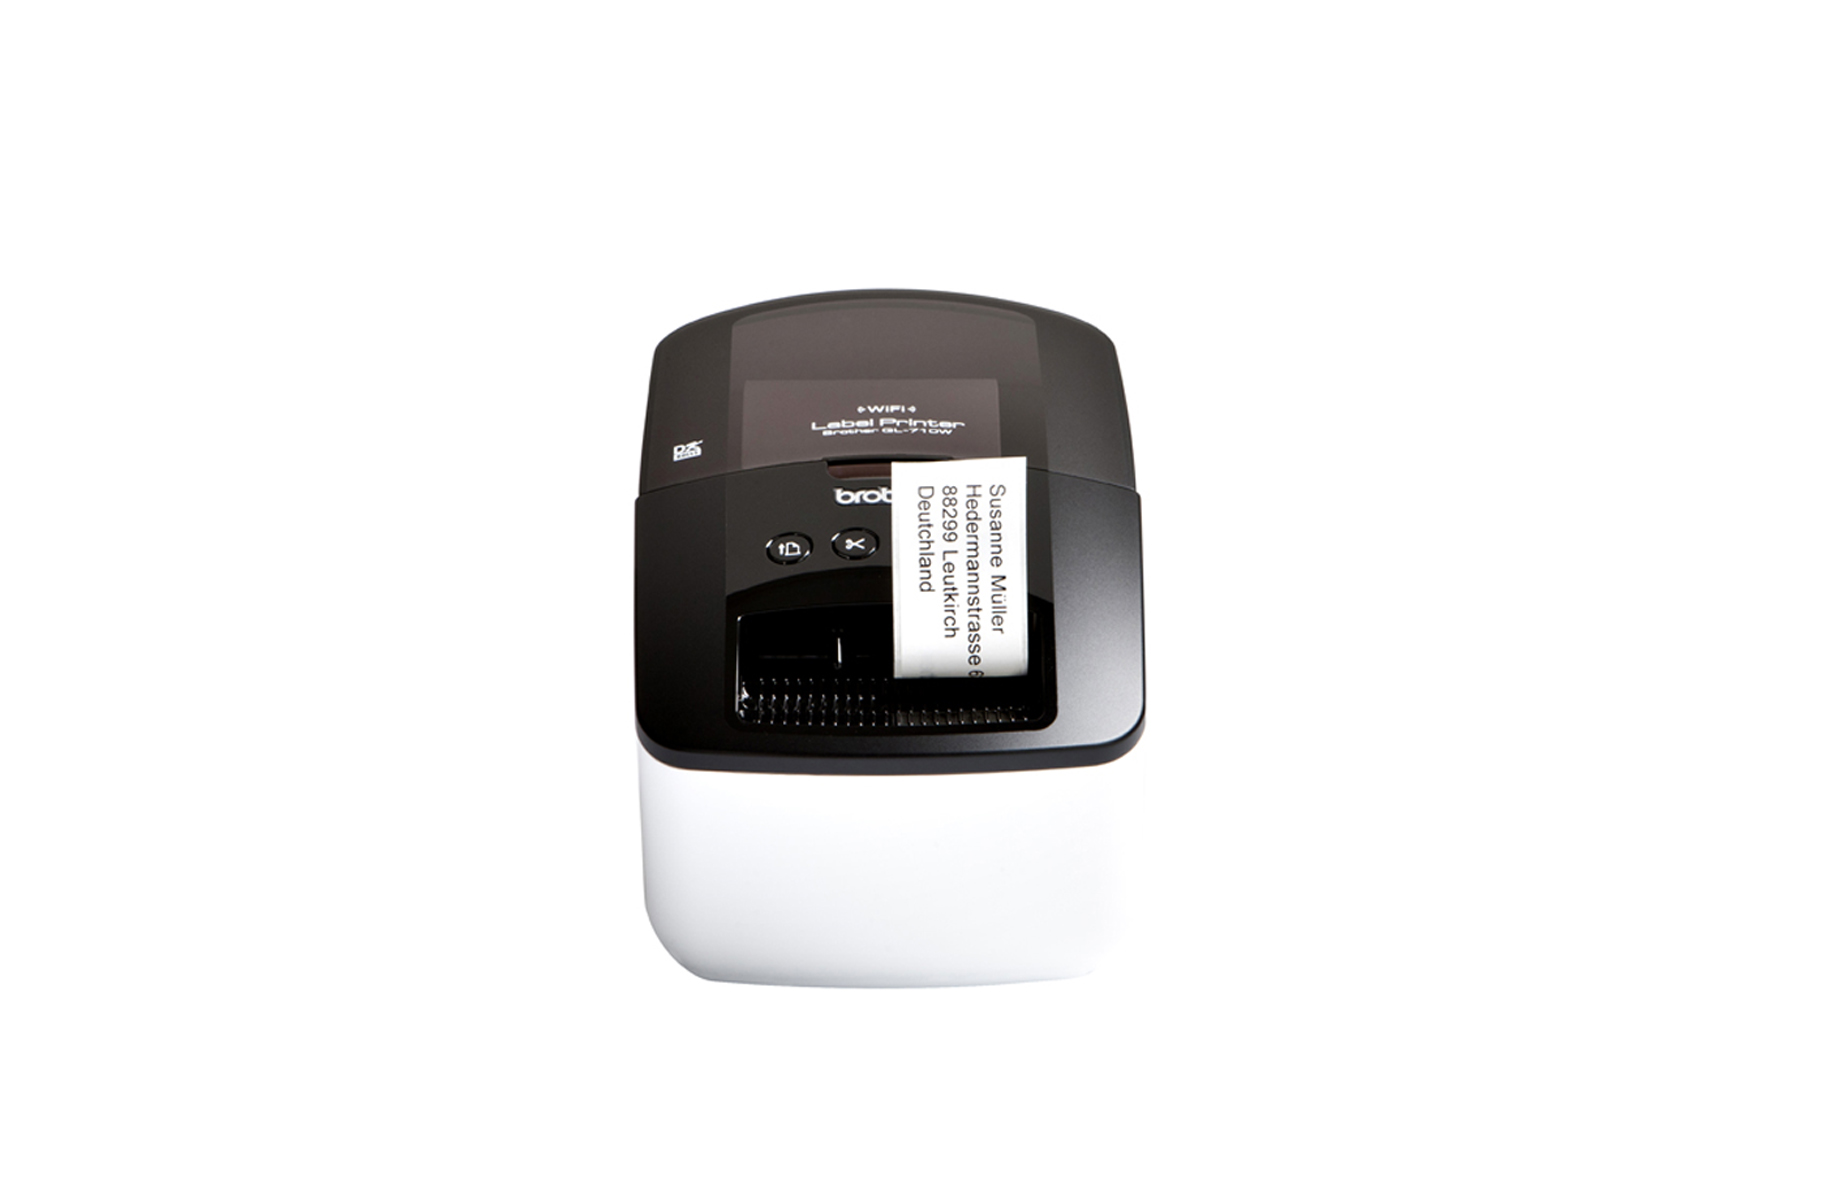 Stampanti etichette Brother compatibili con Apple AirPrint